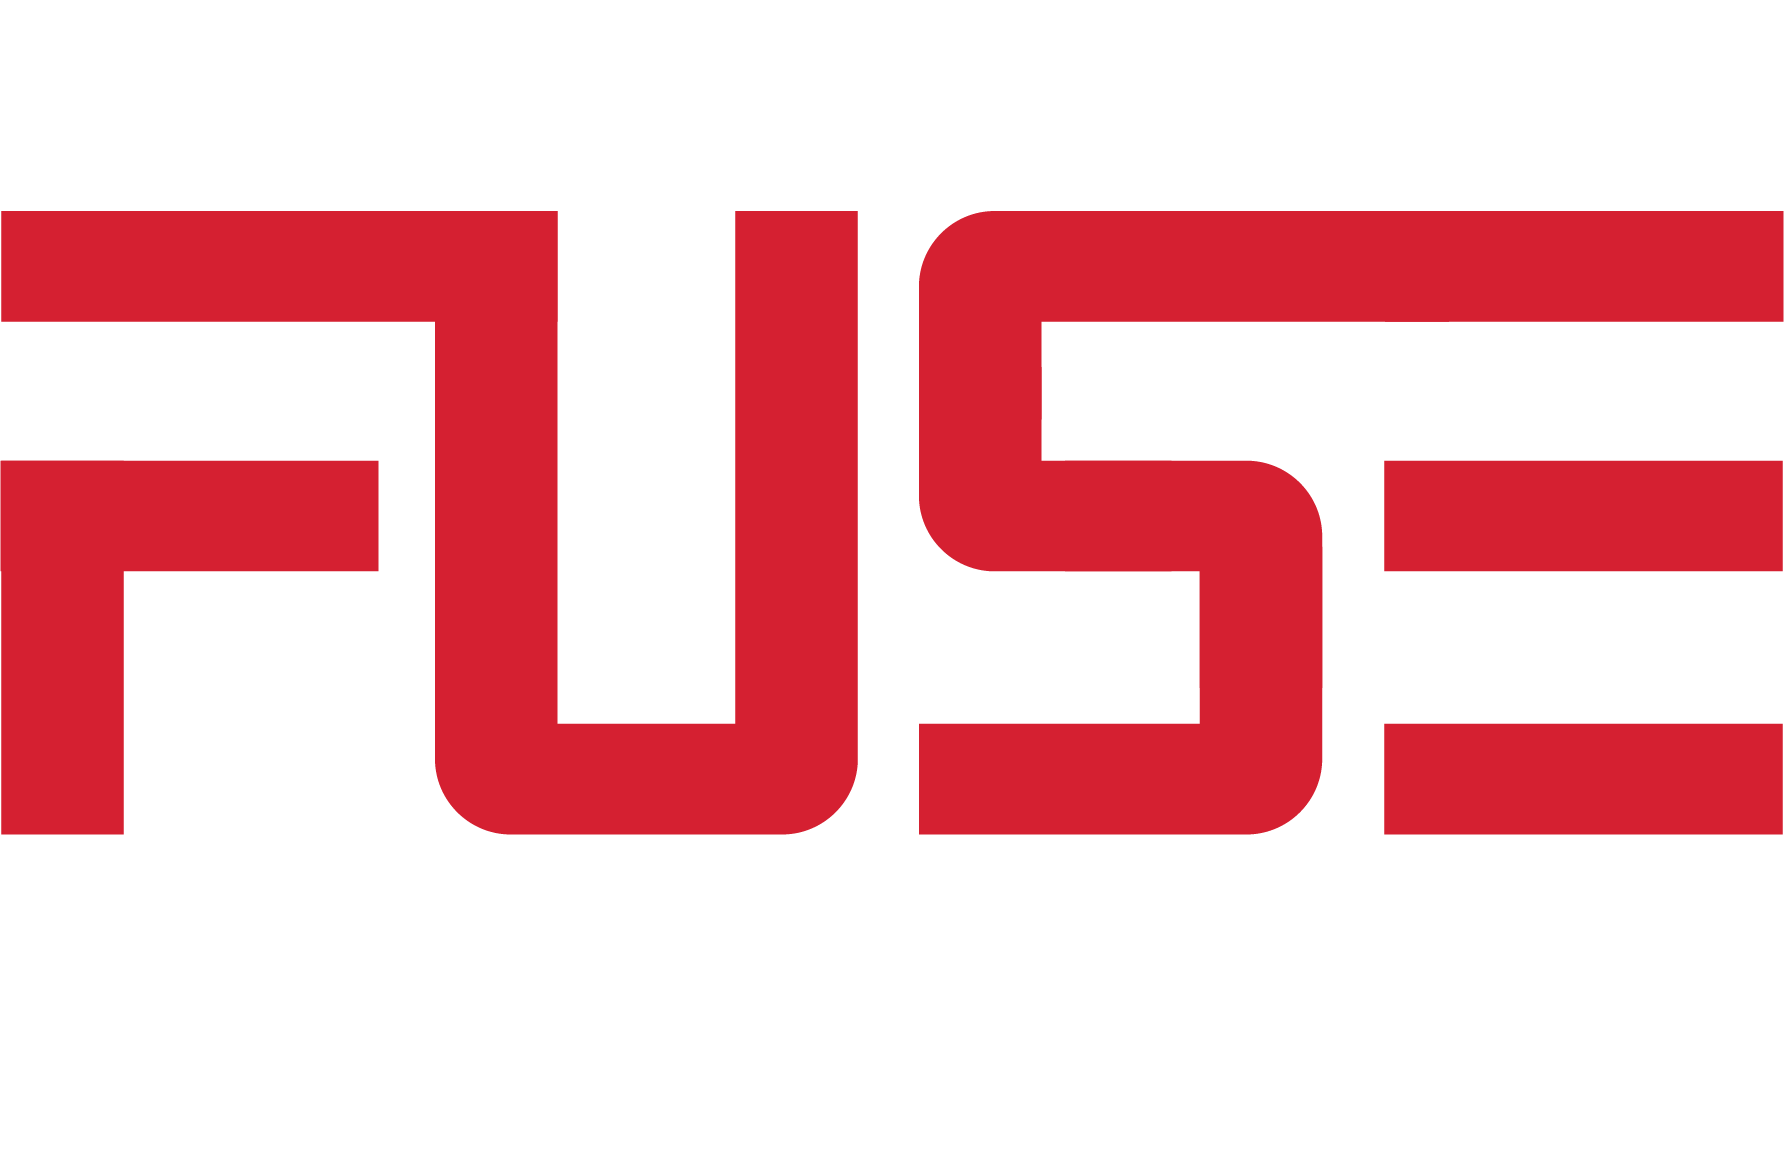 CSUN Communication Design FUSE Bootcamp